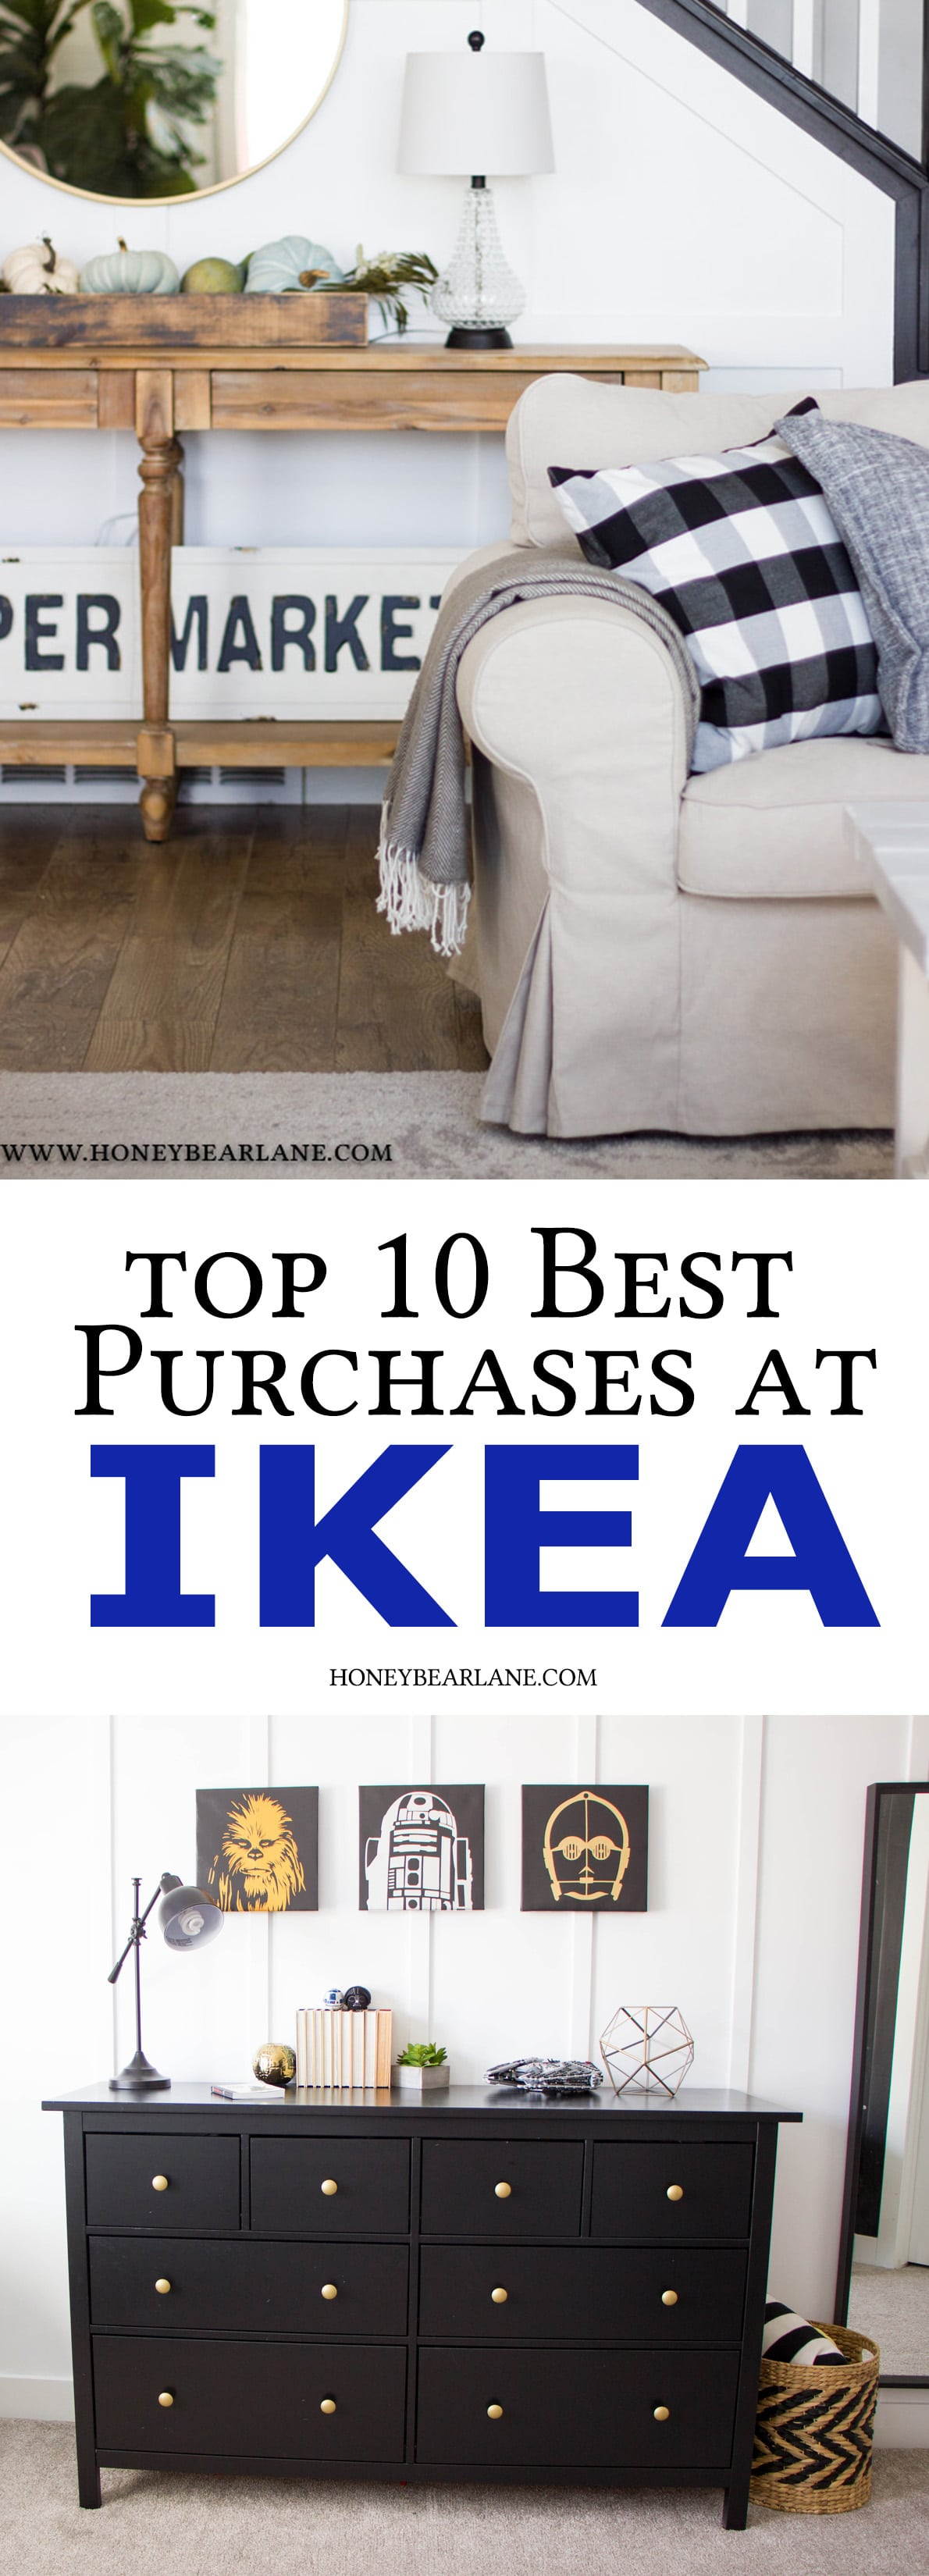 top 10 best ikea purchases